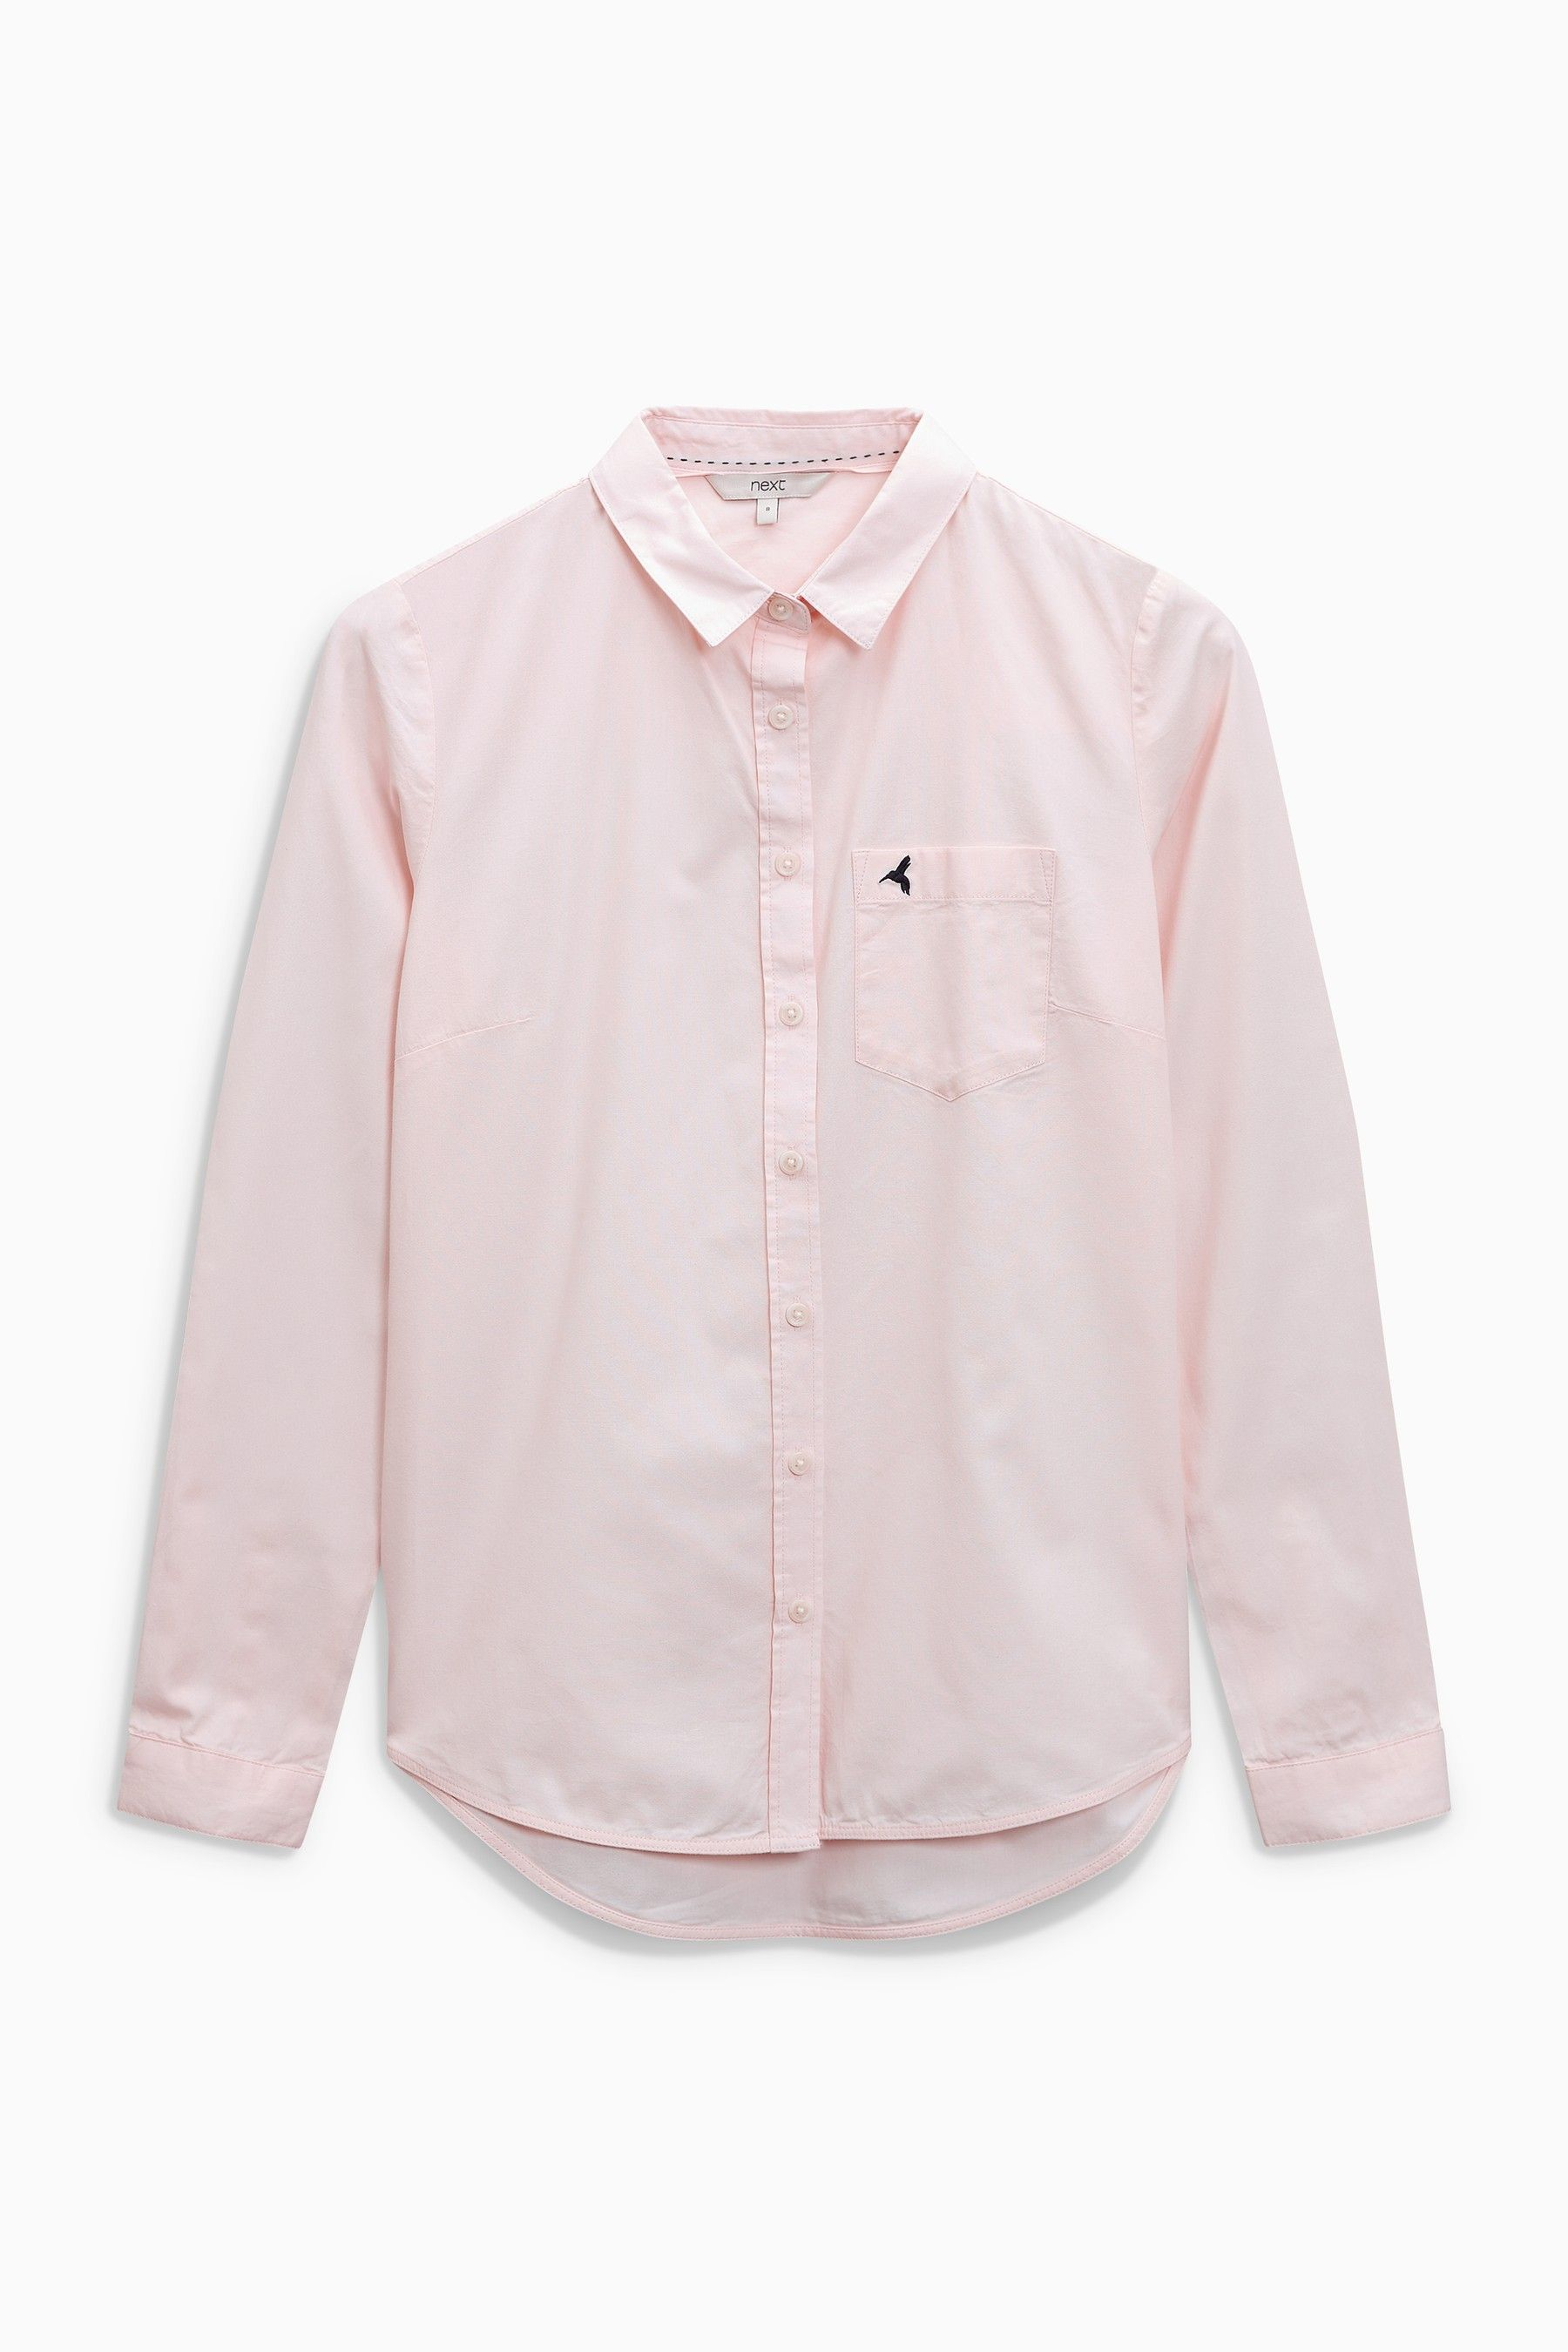 68f421e4 Womens Oxford Shirts Pink | Top Mode Depot